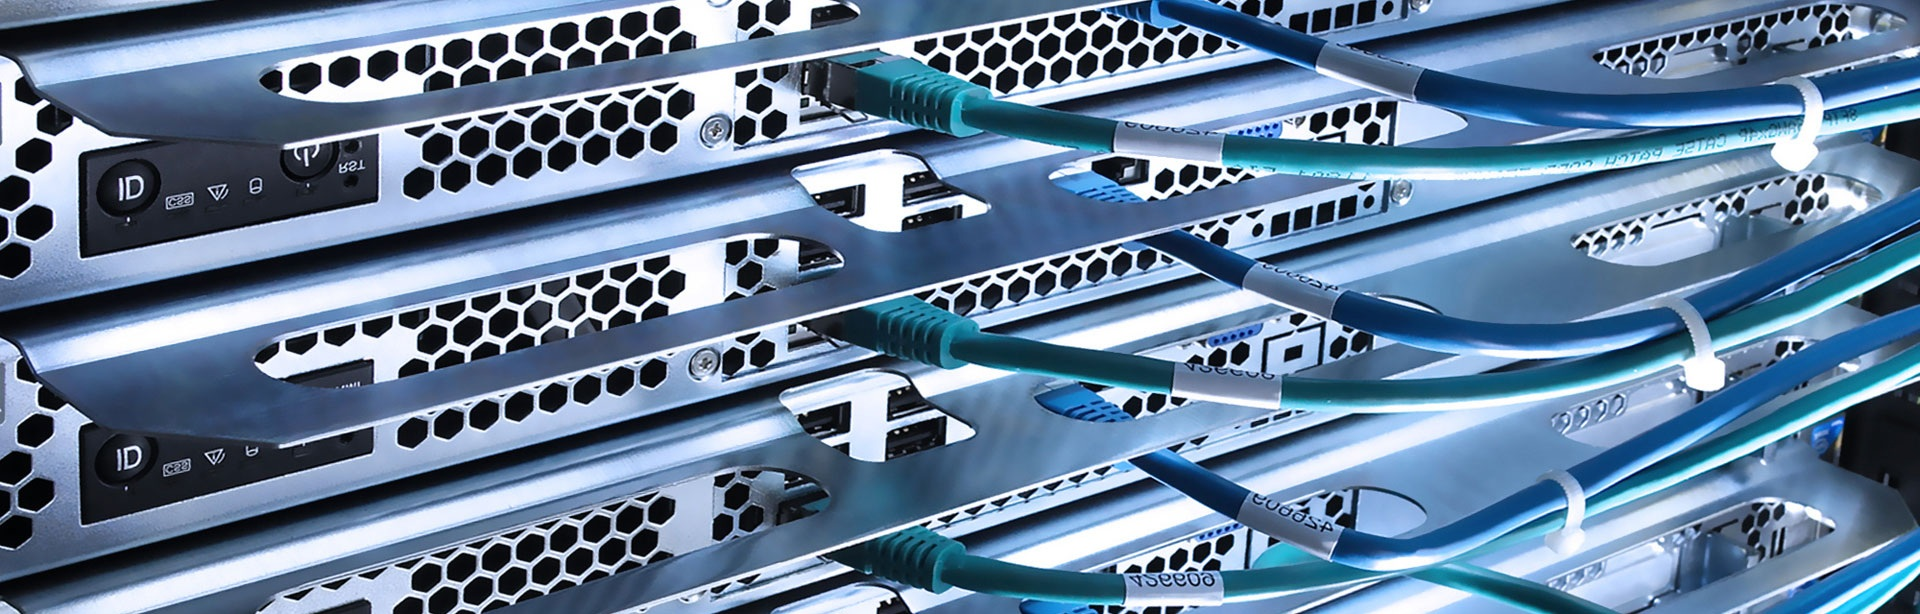 Vinton Louisiana Superior Voice & Data Network Cabling Solutions